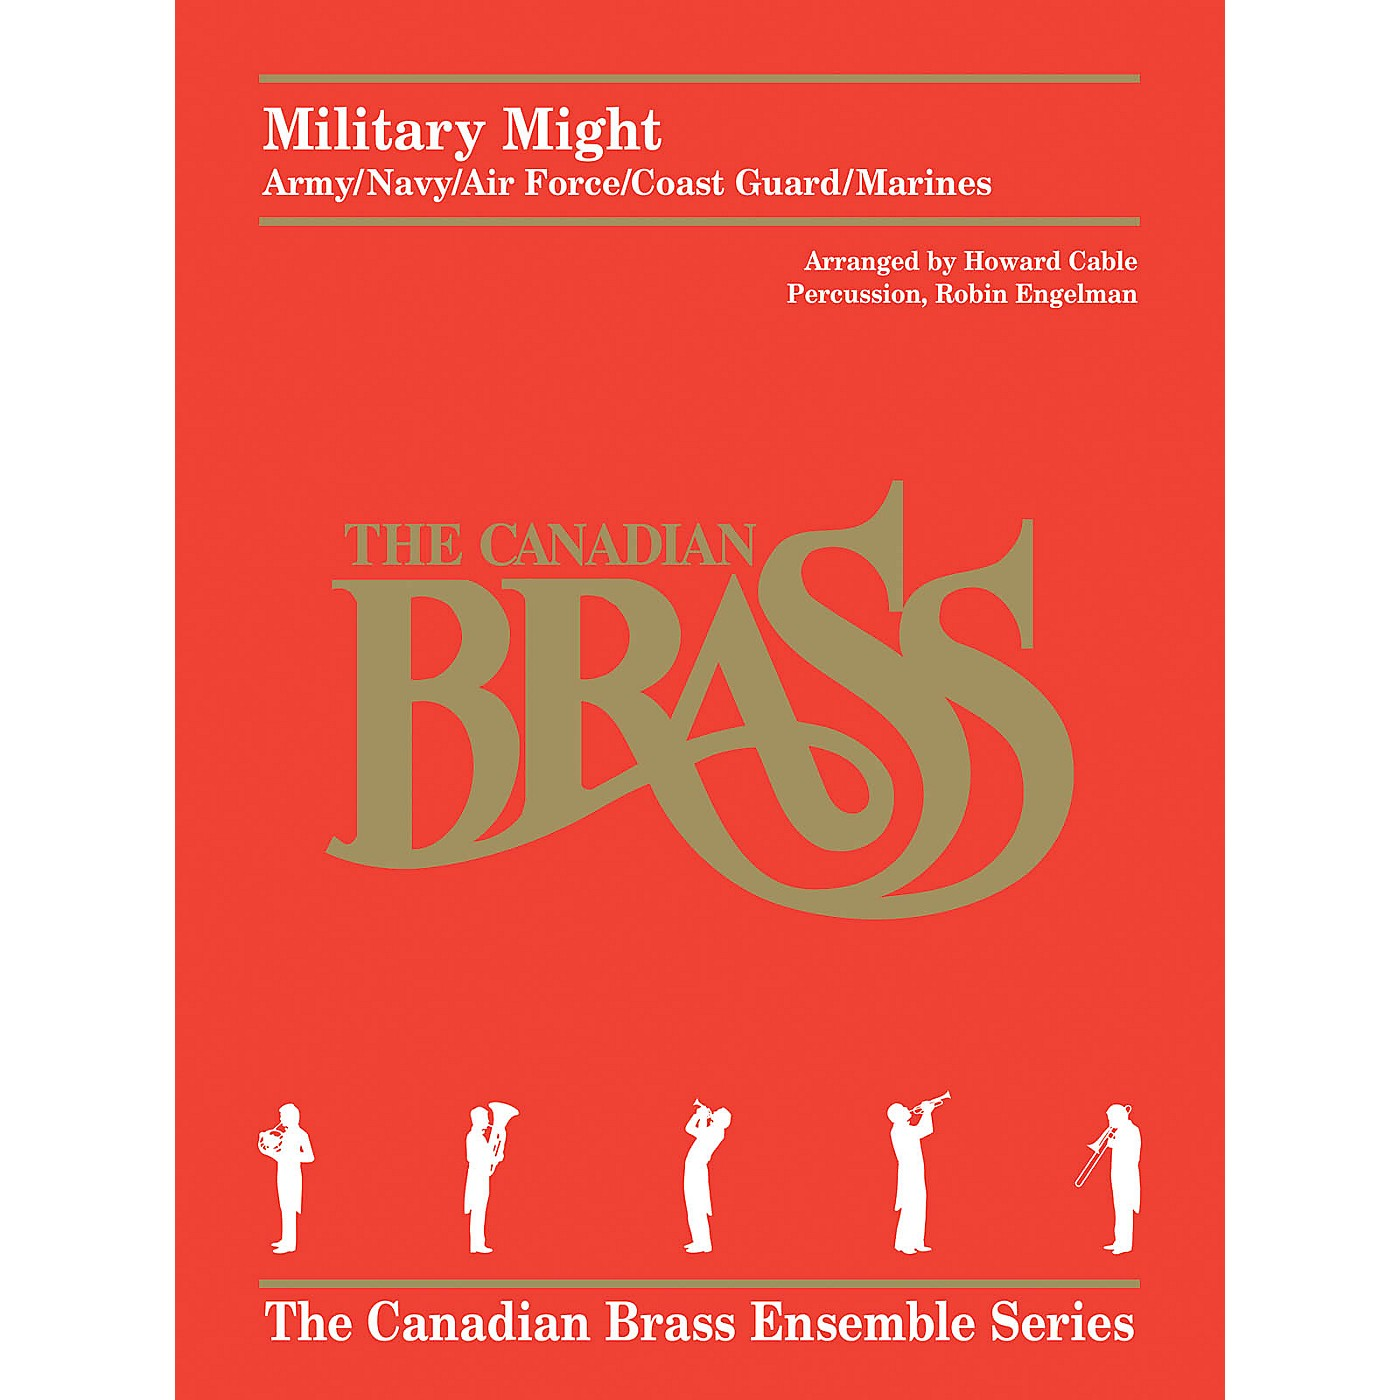 Canadian Brass Military Might (Army/Navy/Air Force/Coast Guard/Marines) Brass Ensemble Series Book by Howard Cable thumbnail